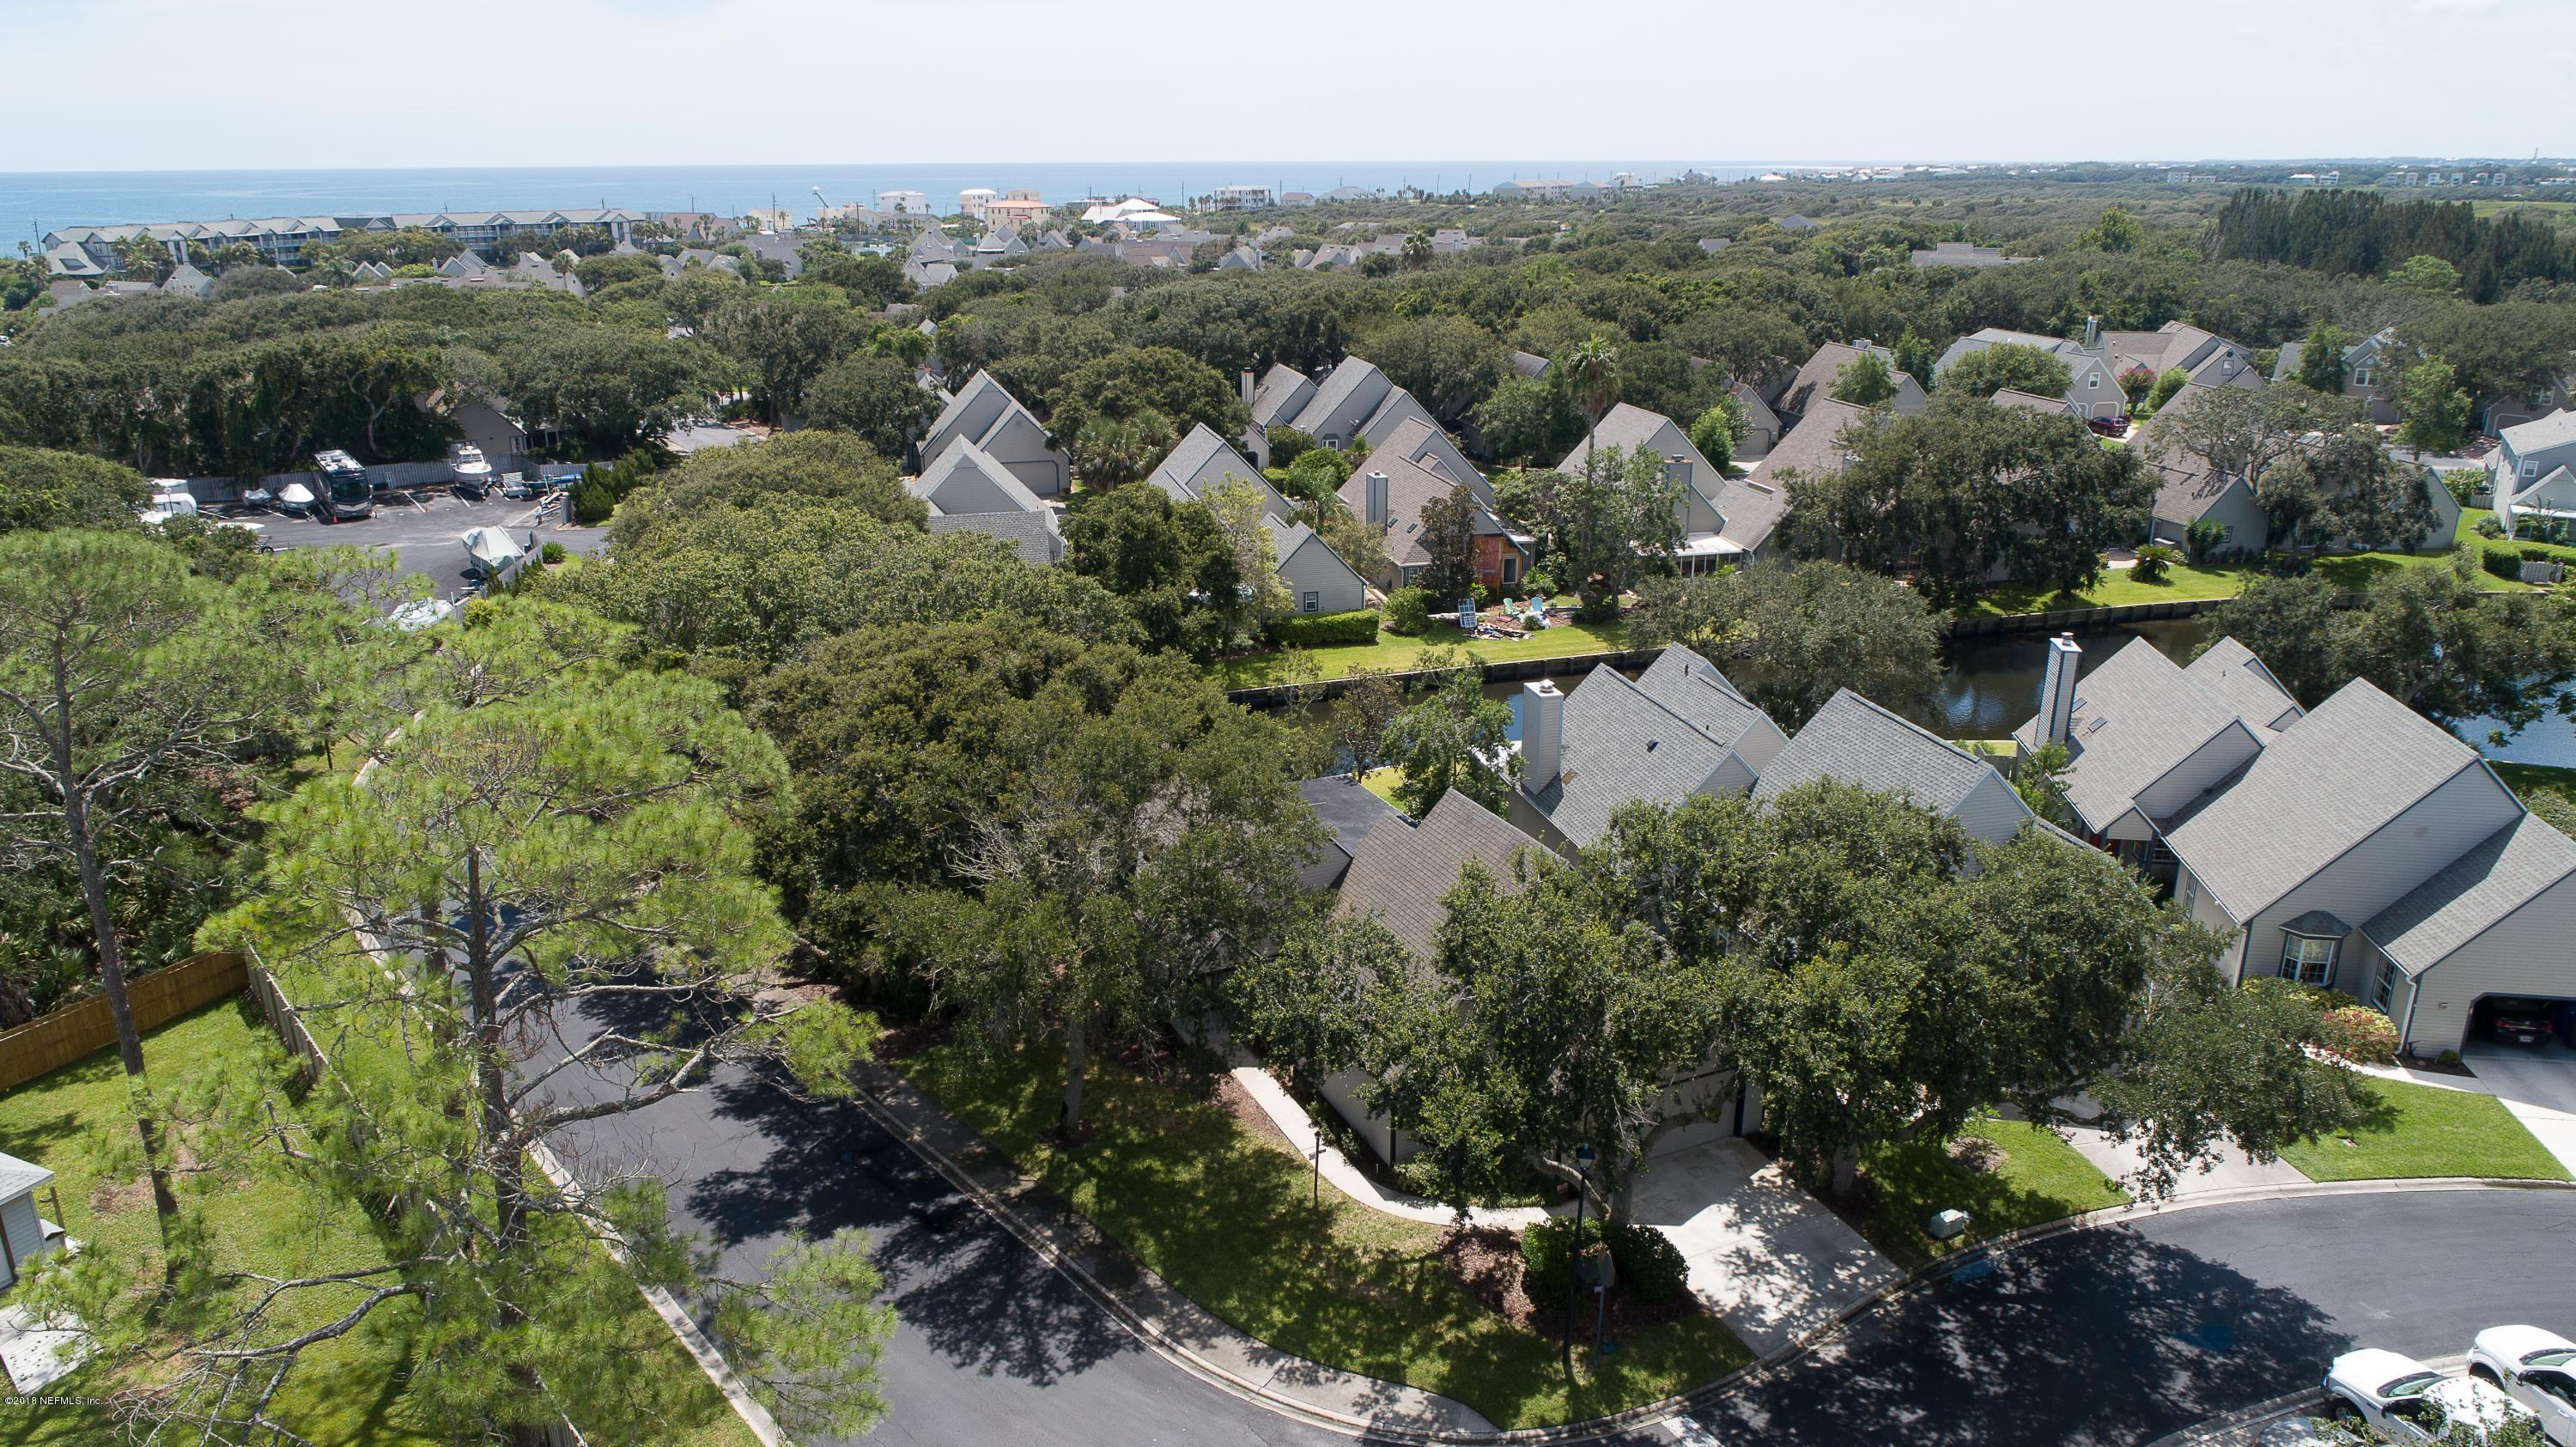 101 COASTAL HOLLOW, ST AUGUSTINE, FLORIDA 32084, 3 Bedrooms Bedrooms, ,2 BathroomsBathrooms,Residential - single family,For sale,COASTAL HOLLOW,950890